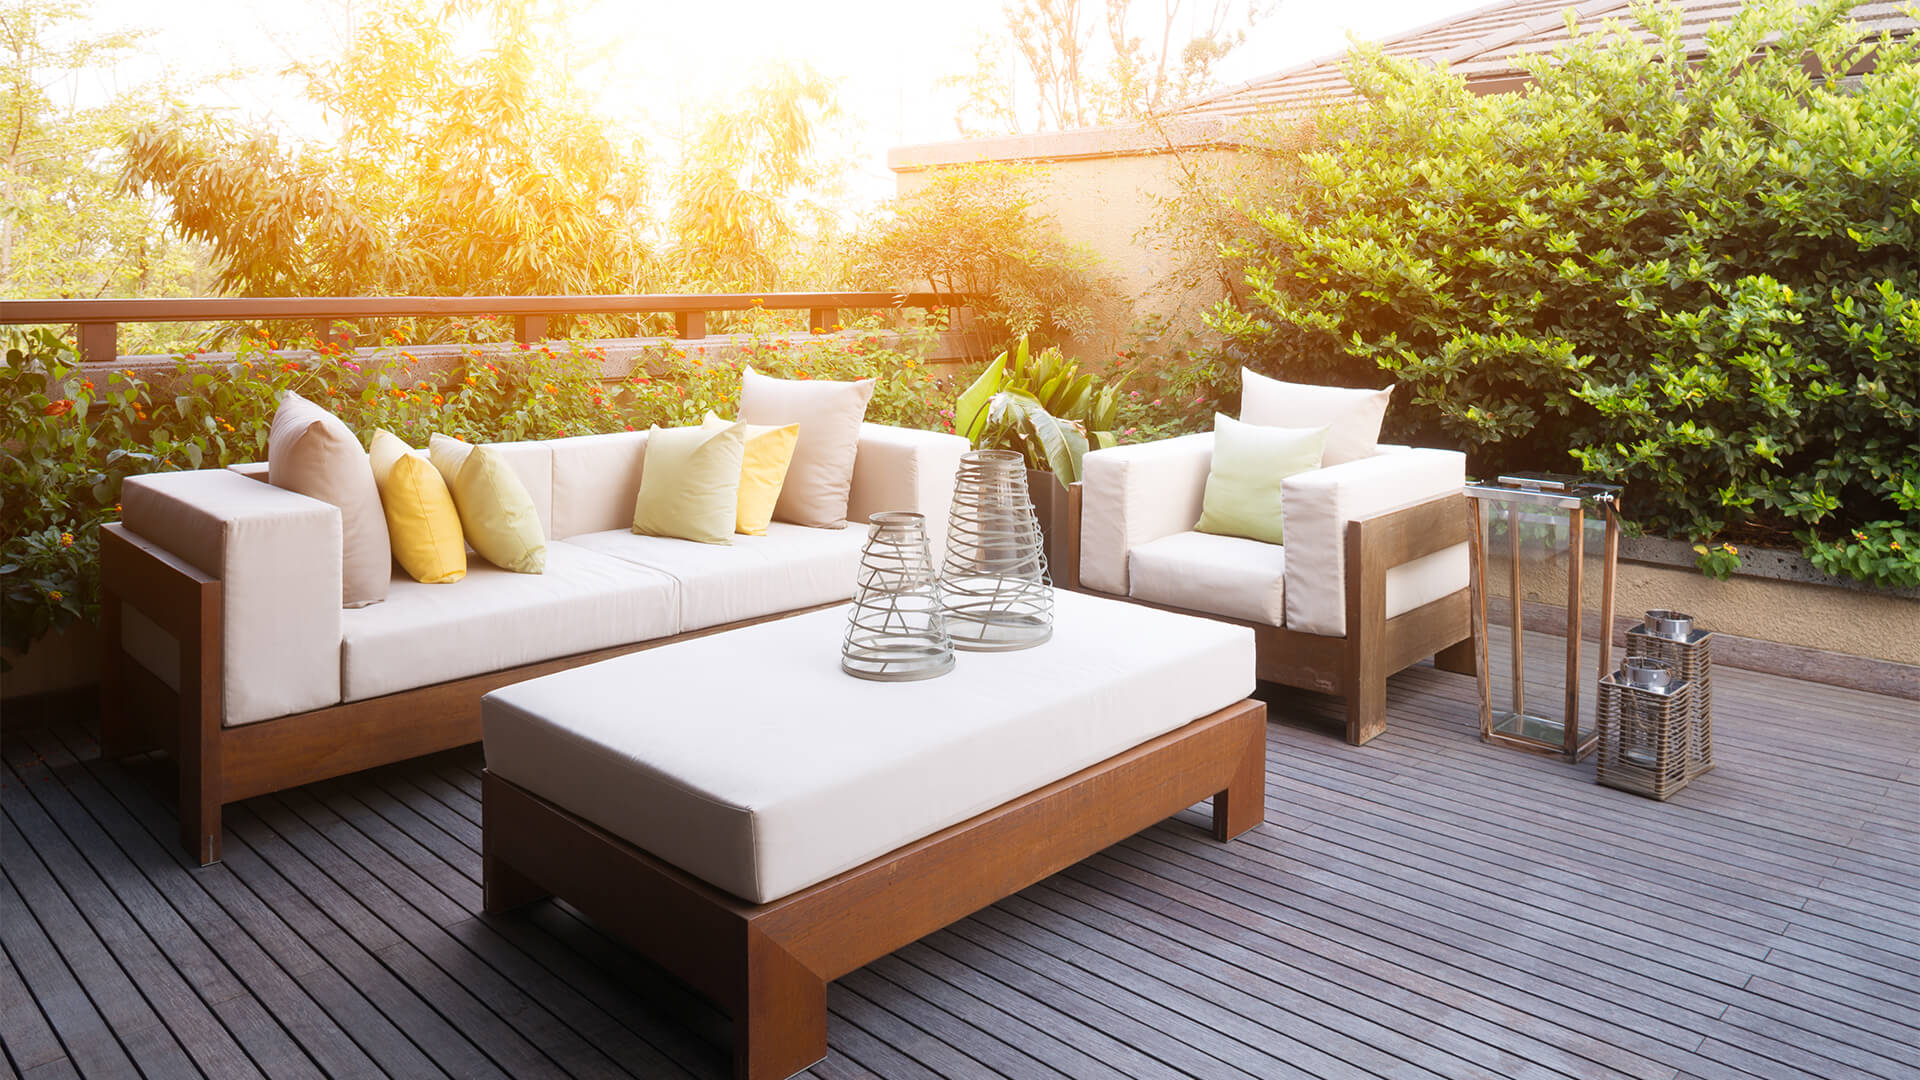 Outdoor living space with sofas and coffee table and lanterns